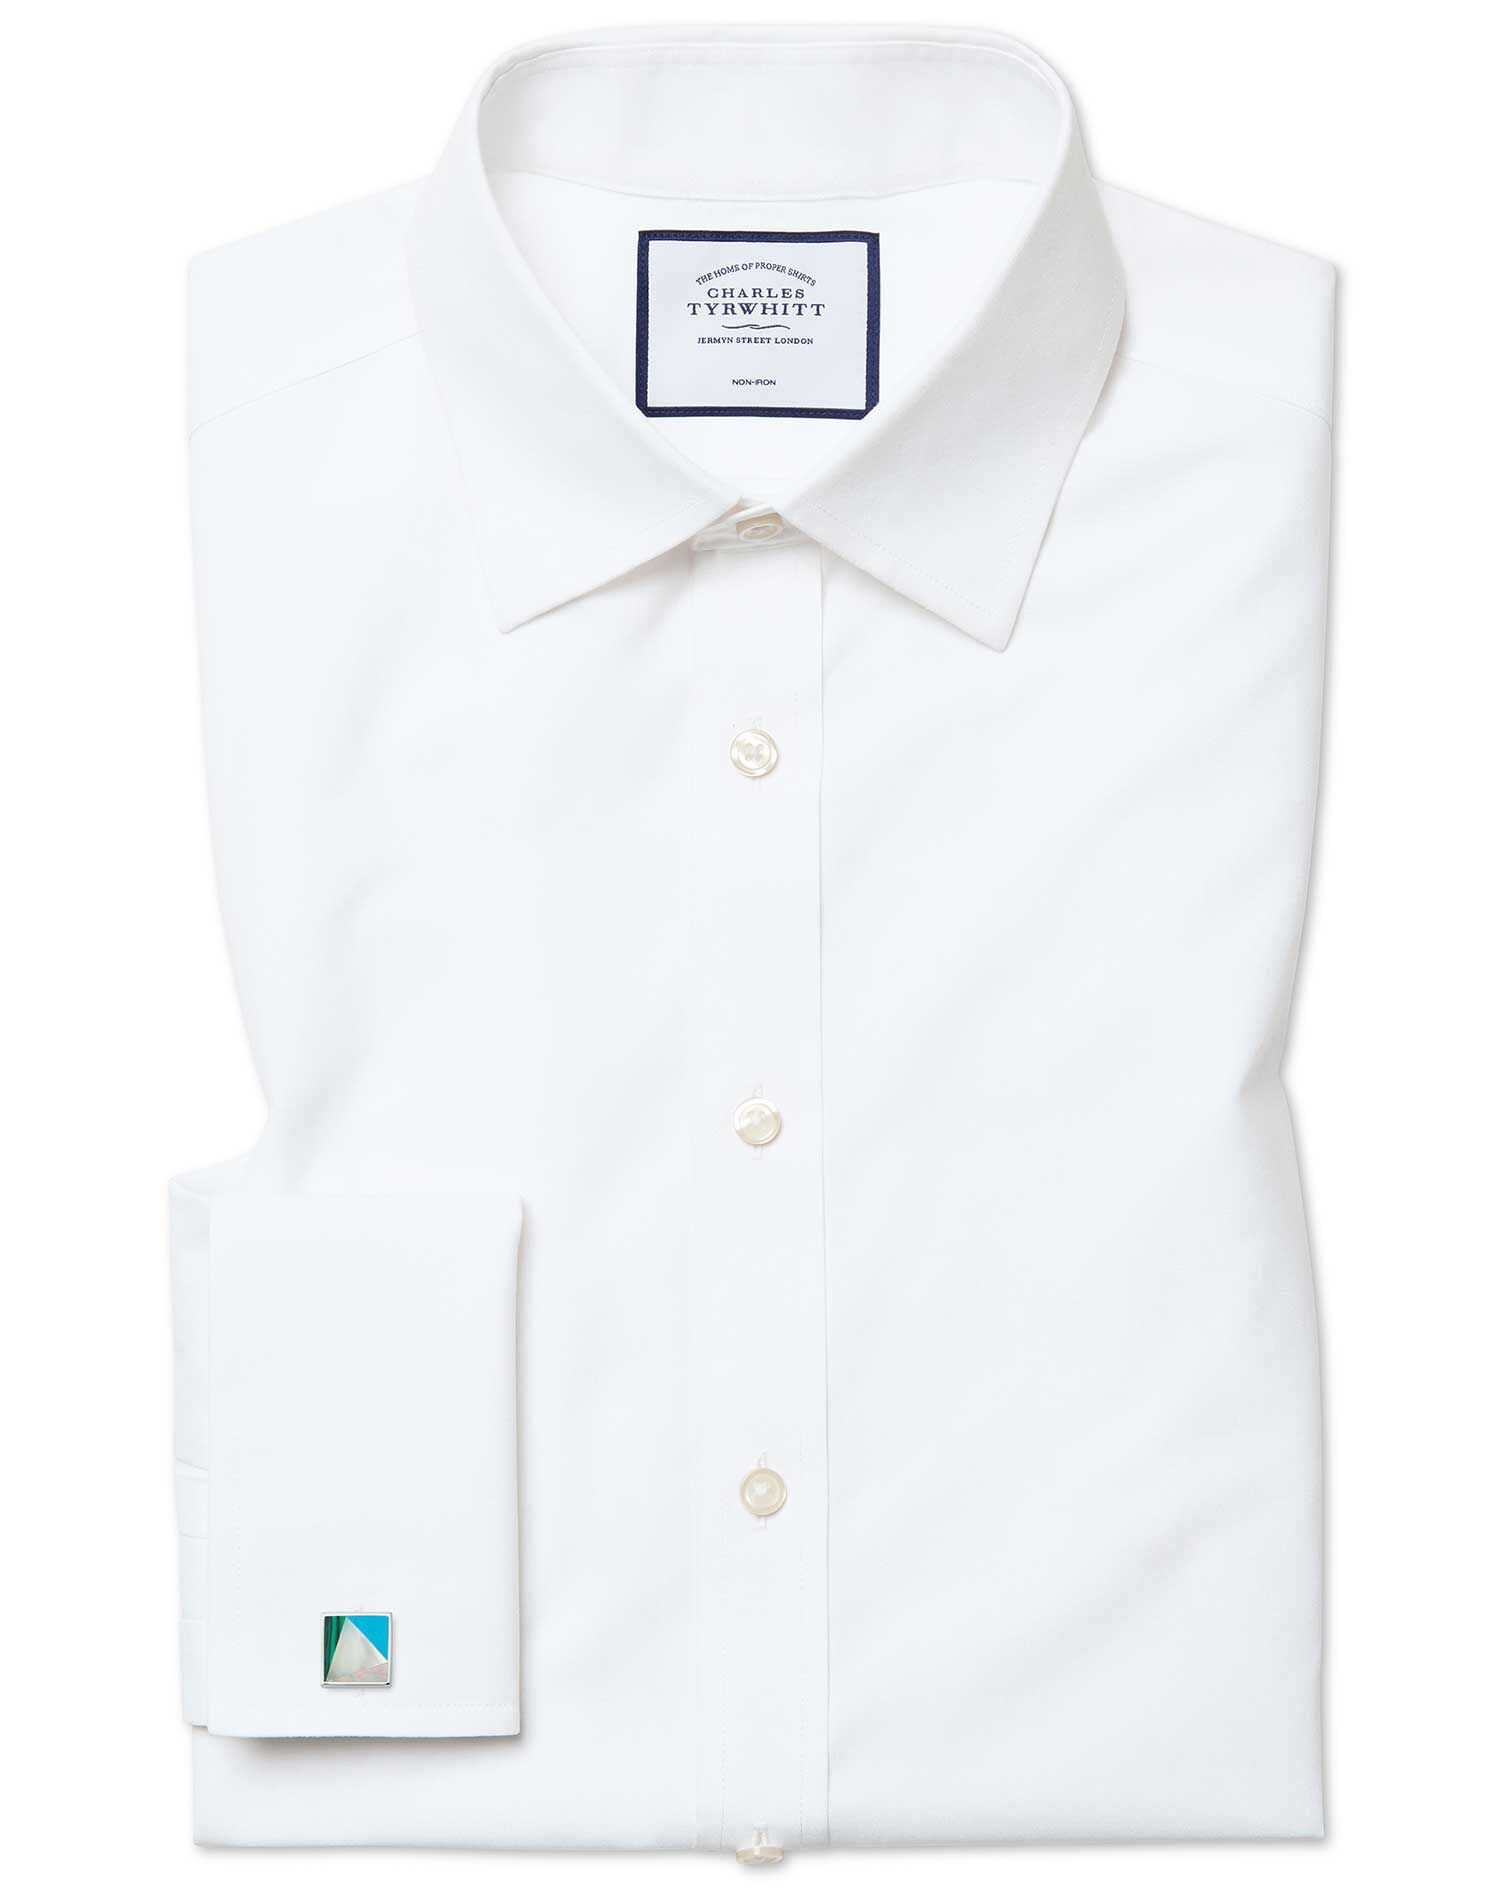 Classic Fit Non-Iron Poplin White Cotton Formal Shirt Double Cuff Size 16/36 by Charles Tyrwhitt